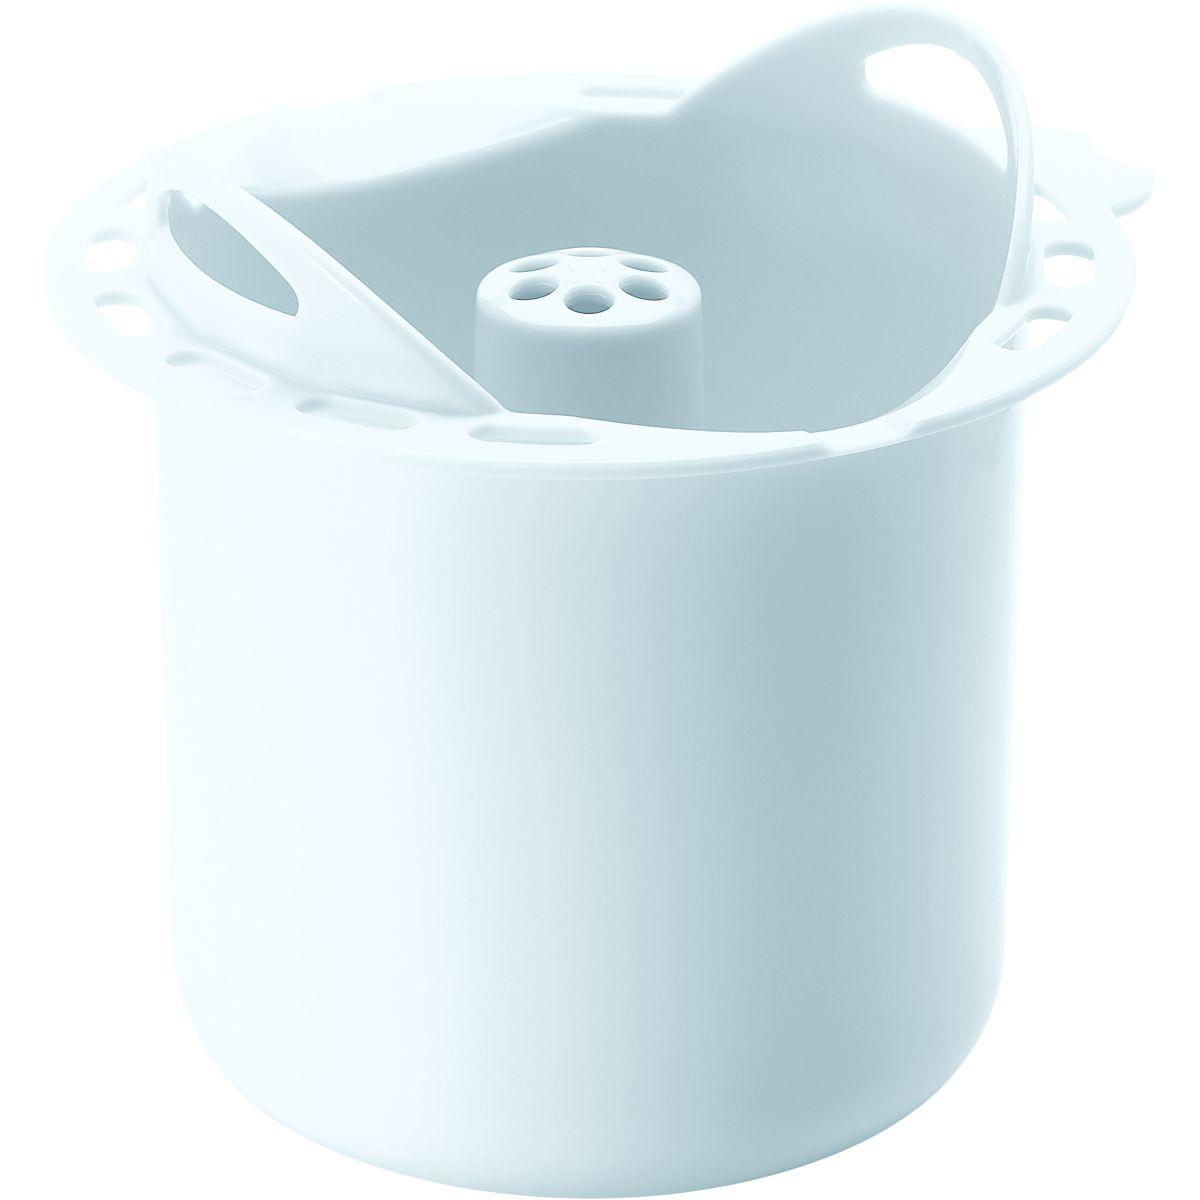 Accessoire beaba 912466 pasta/rice cooke (photo)